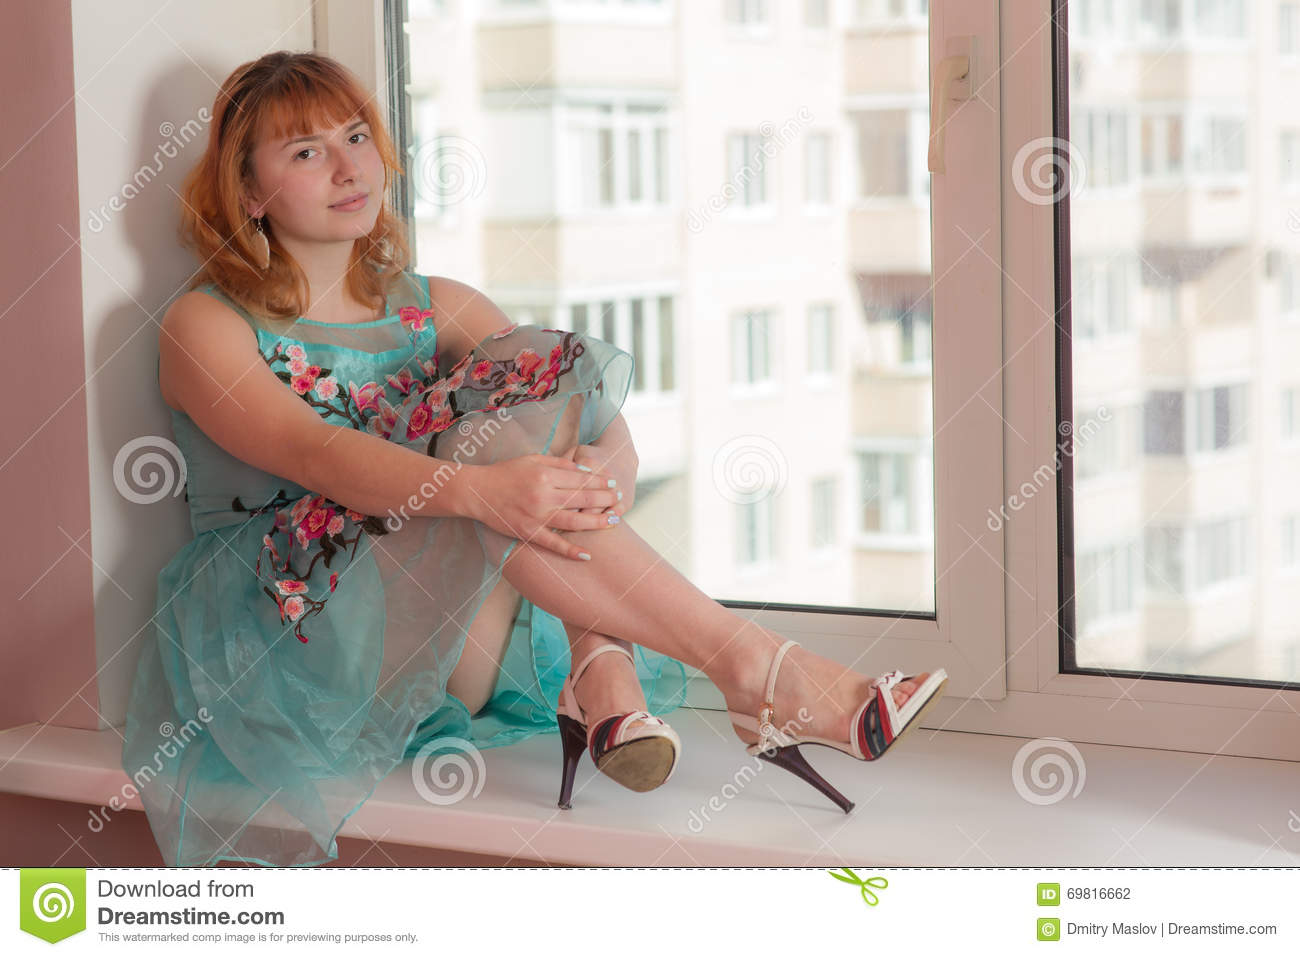 Girl Sitting On A Window Sill Stock Photo Image 69816662